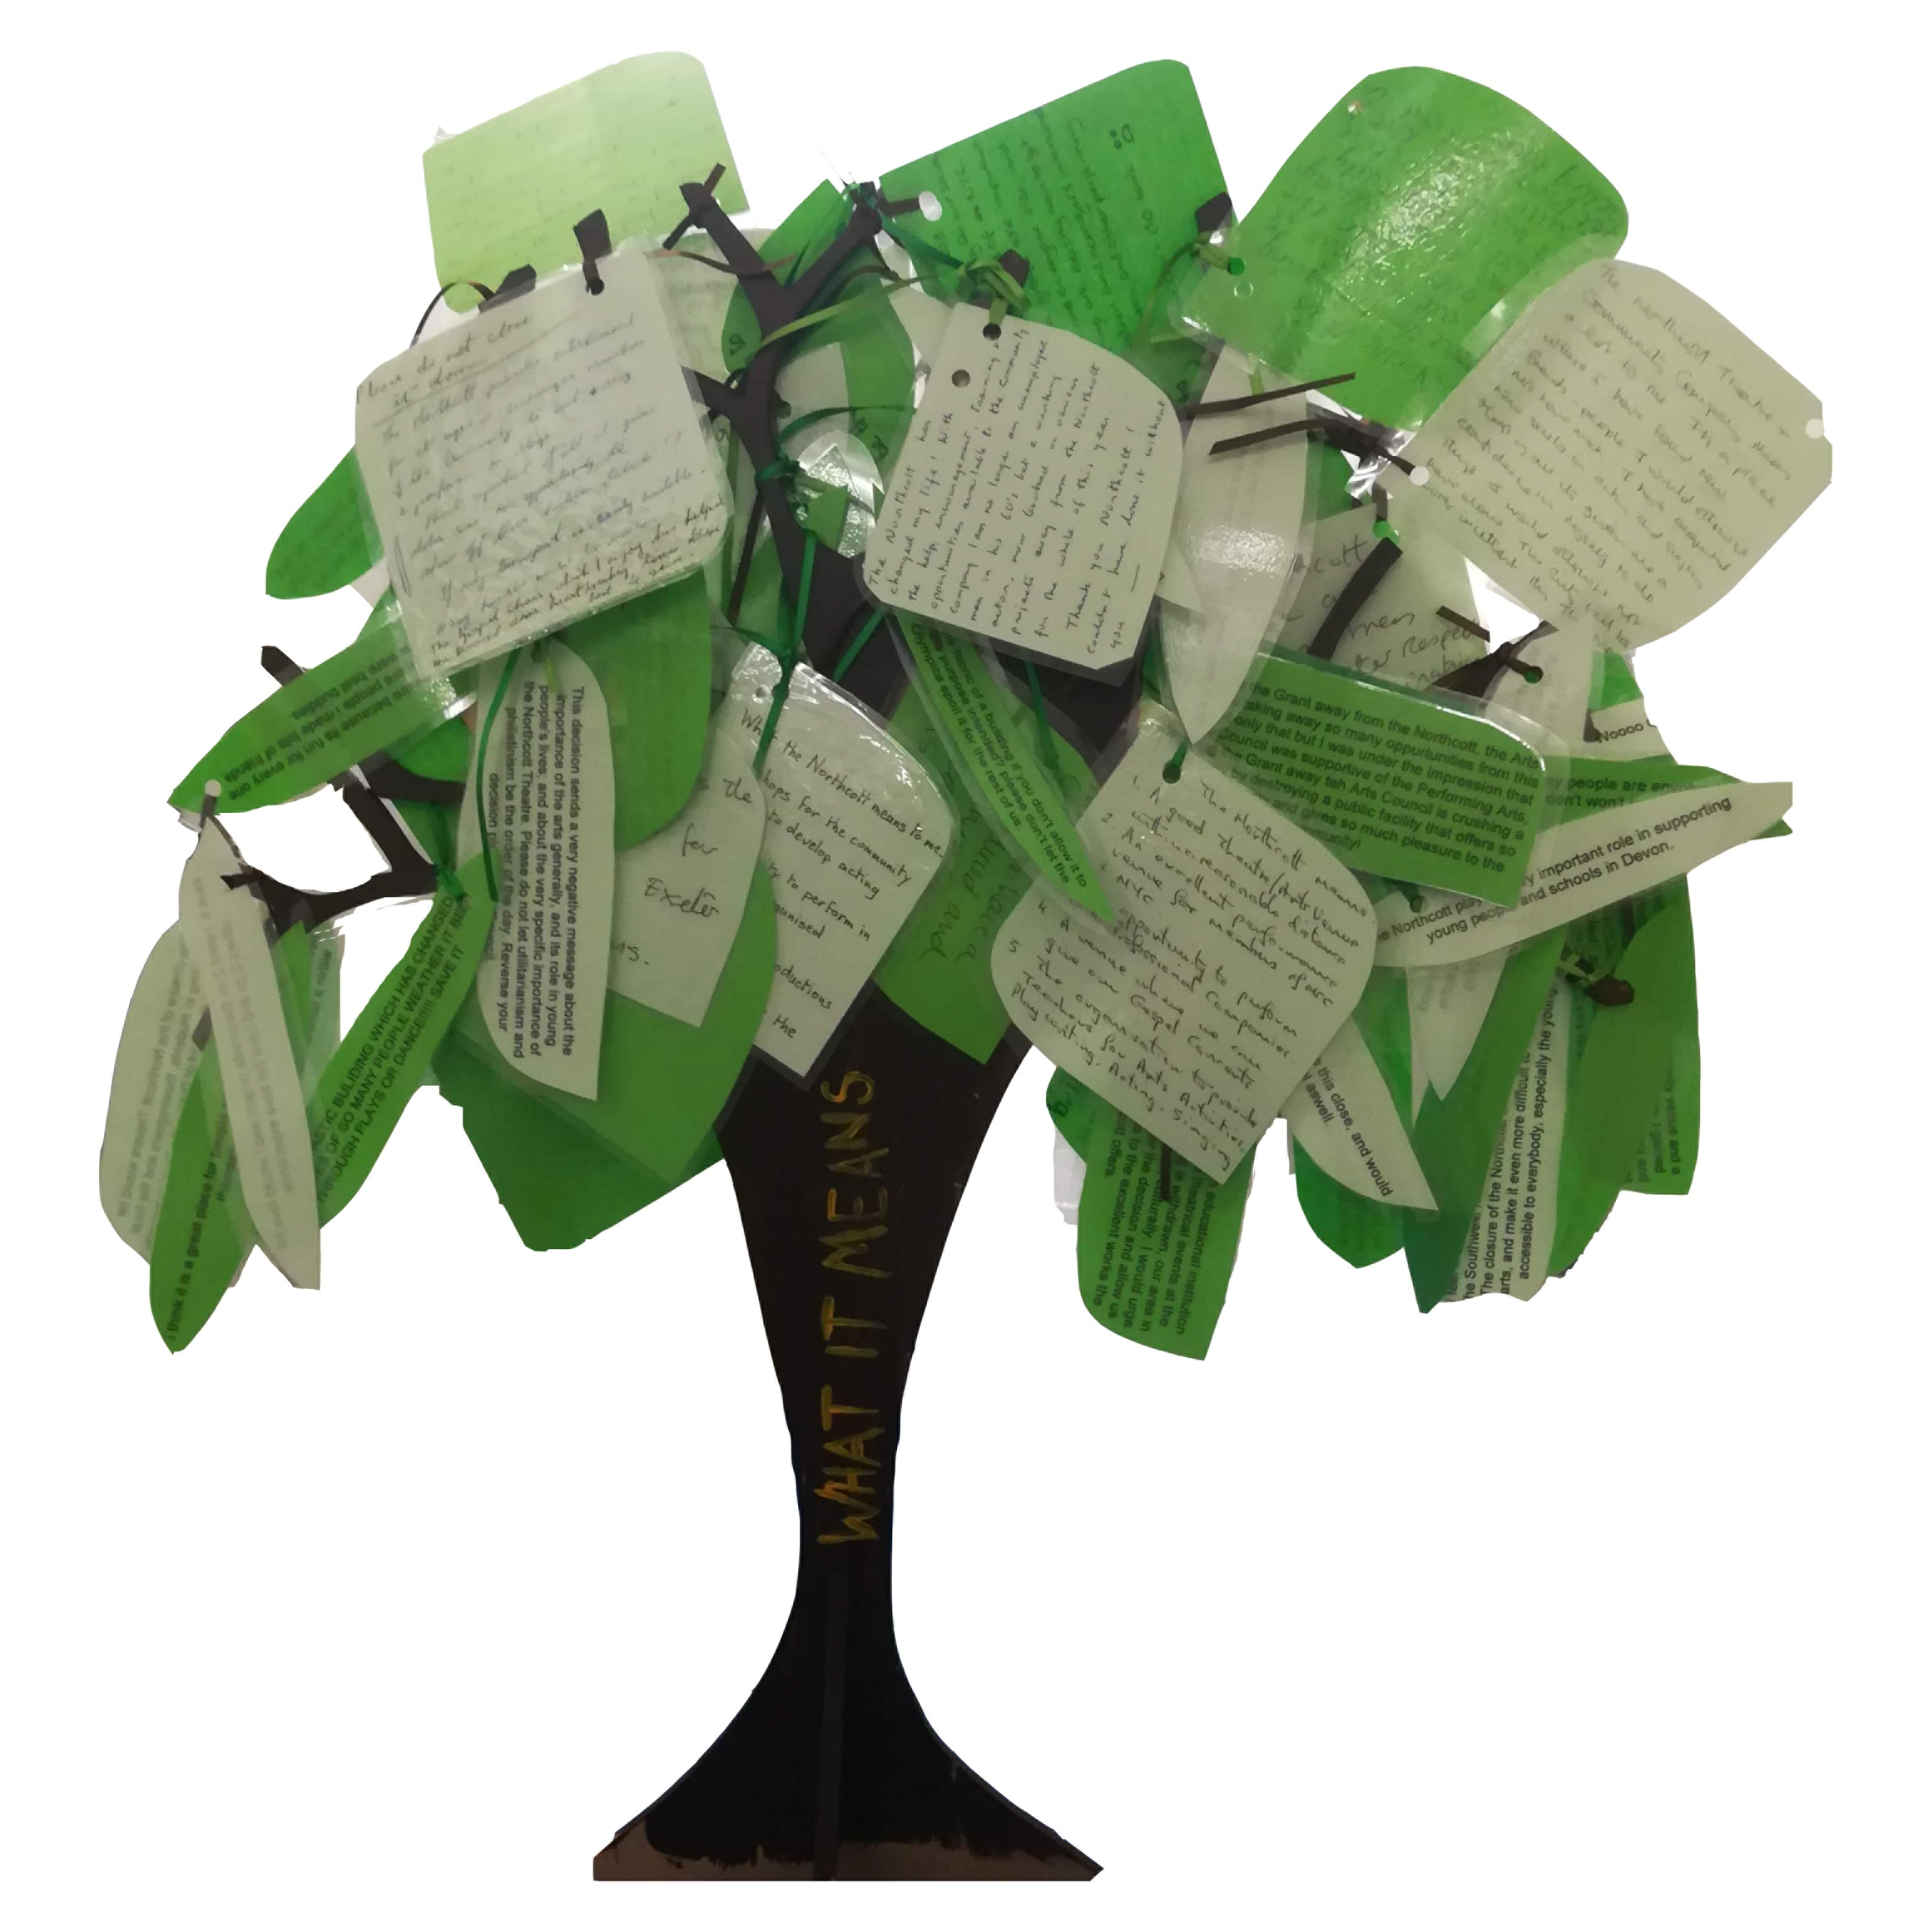 Tree from Save the Northcott campaign - each leaf has the reason why the Northcott is important to the writer on it